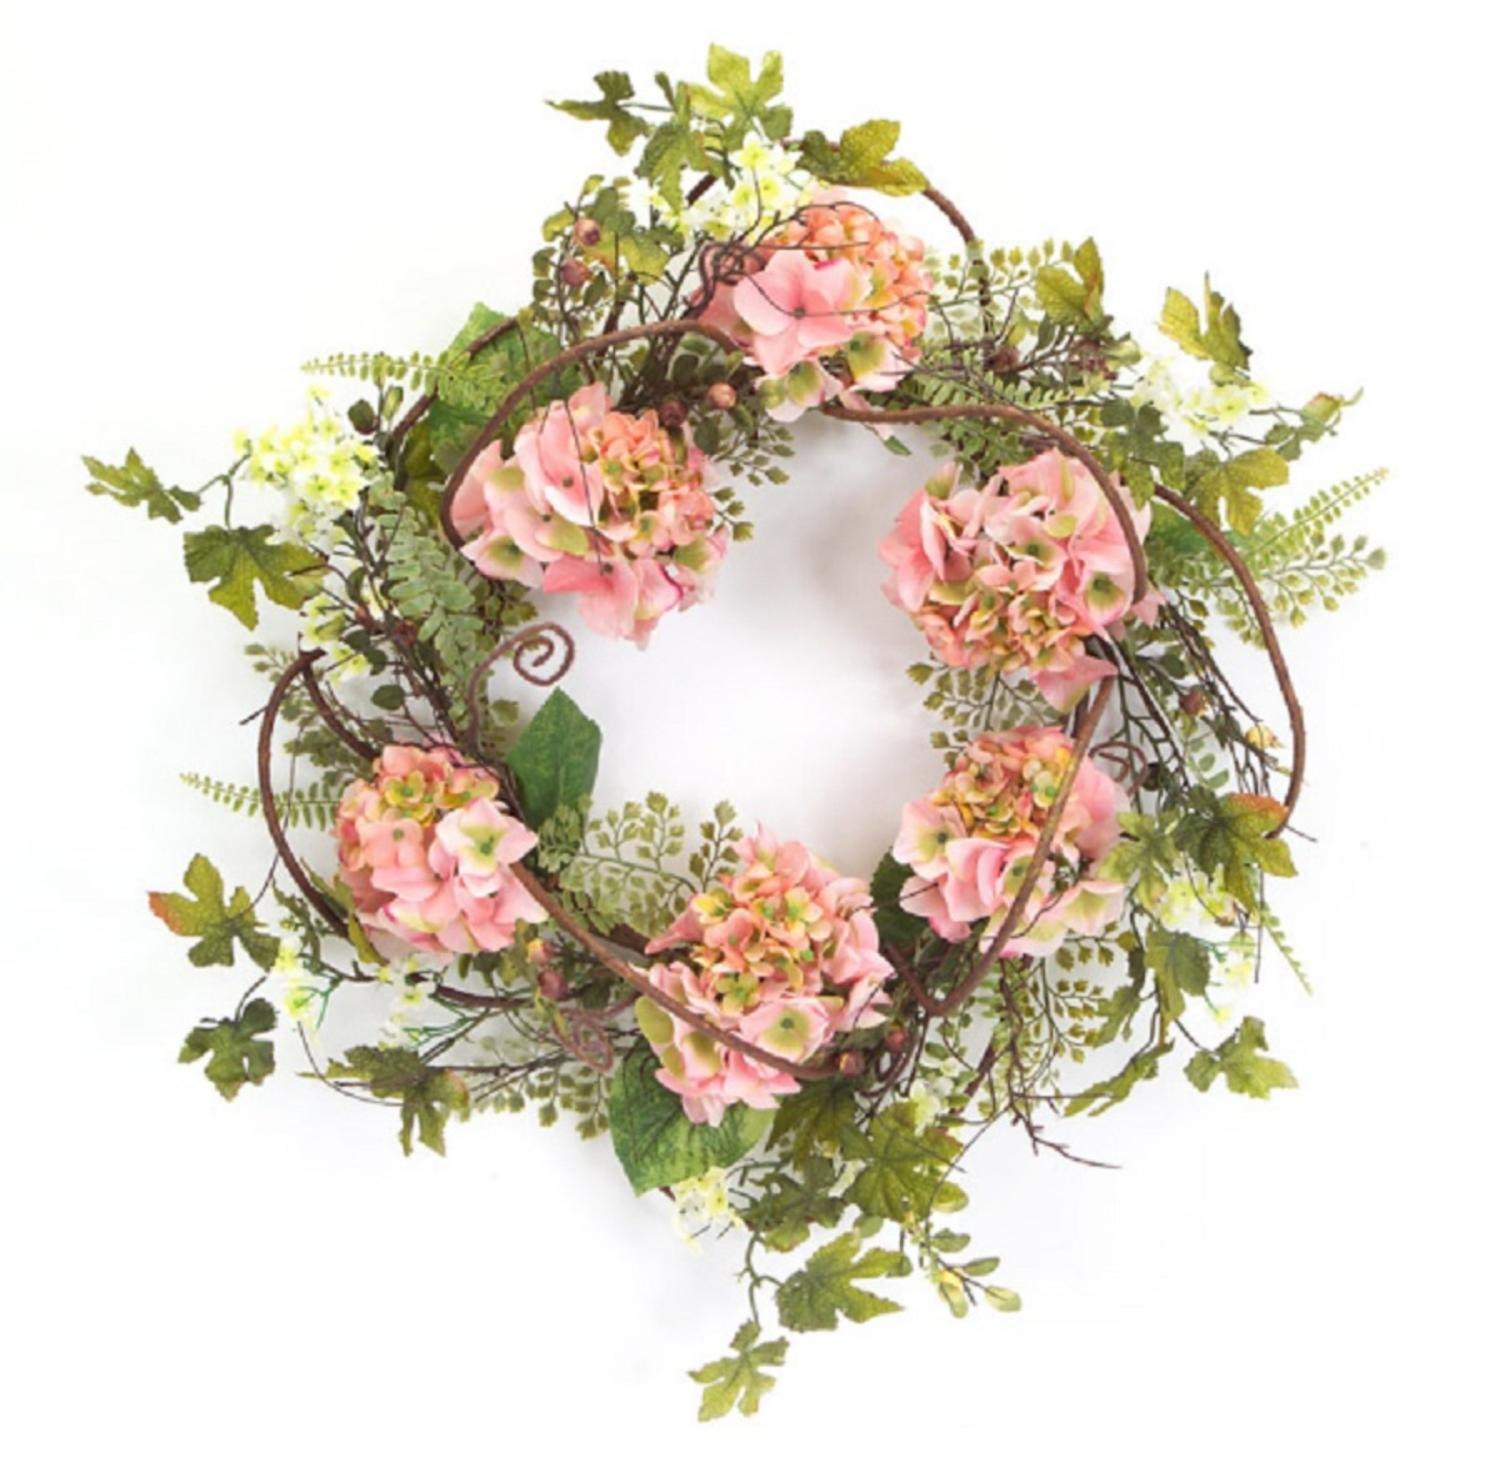 Pack of 2 Decorative Artificial Light Pink Hydrangea Wreaths 20""